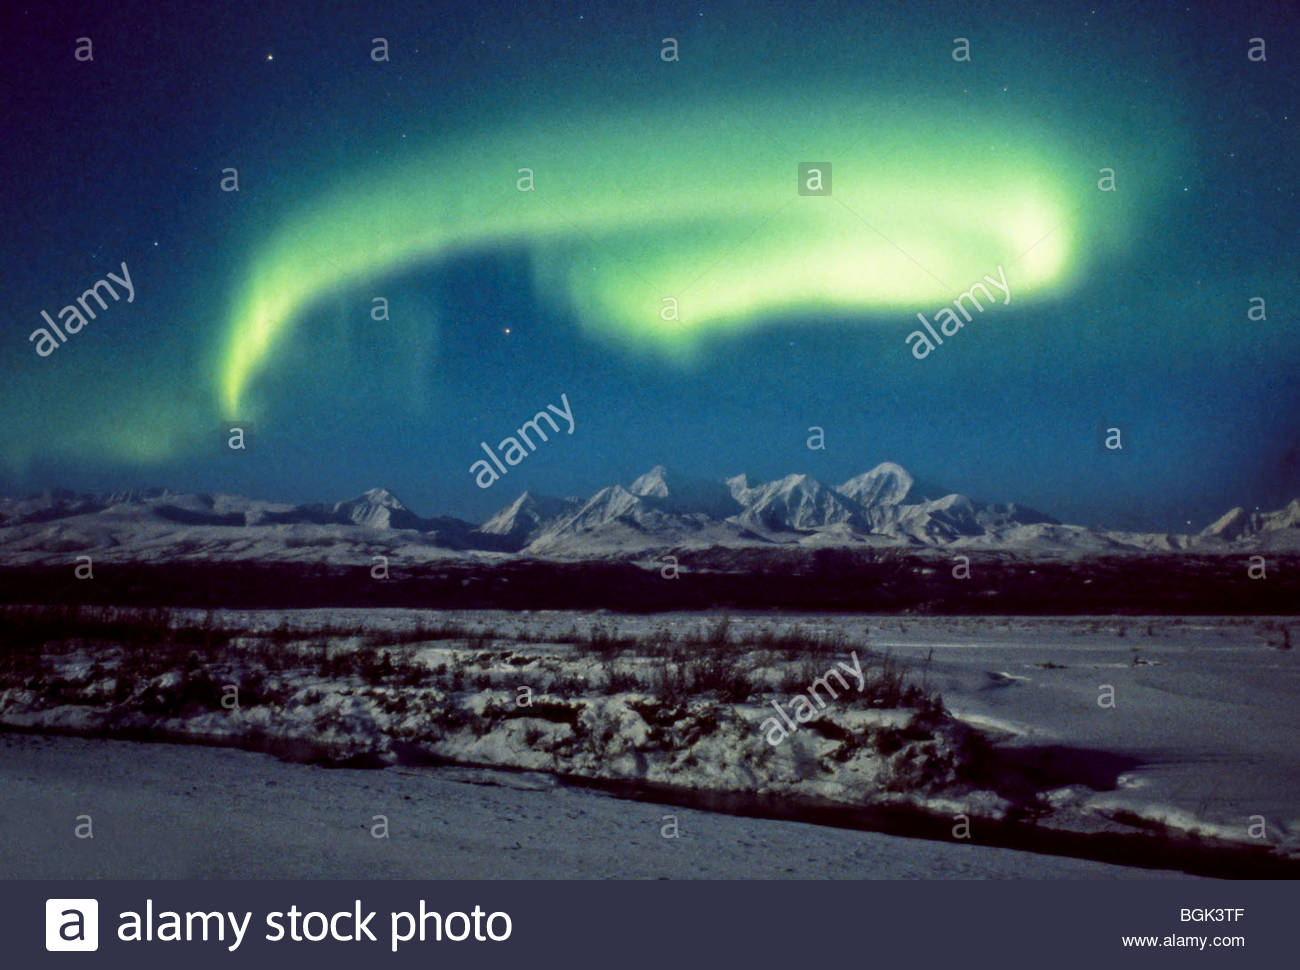 Alaska, Big Delta. The comet Hale-Bopp shines brightly through northern lights over the Delta River. - Stock Image